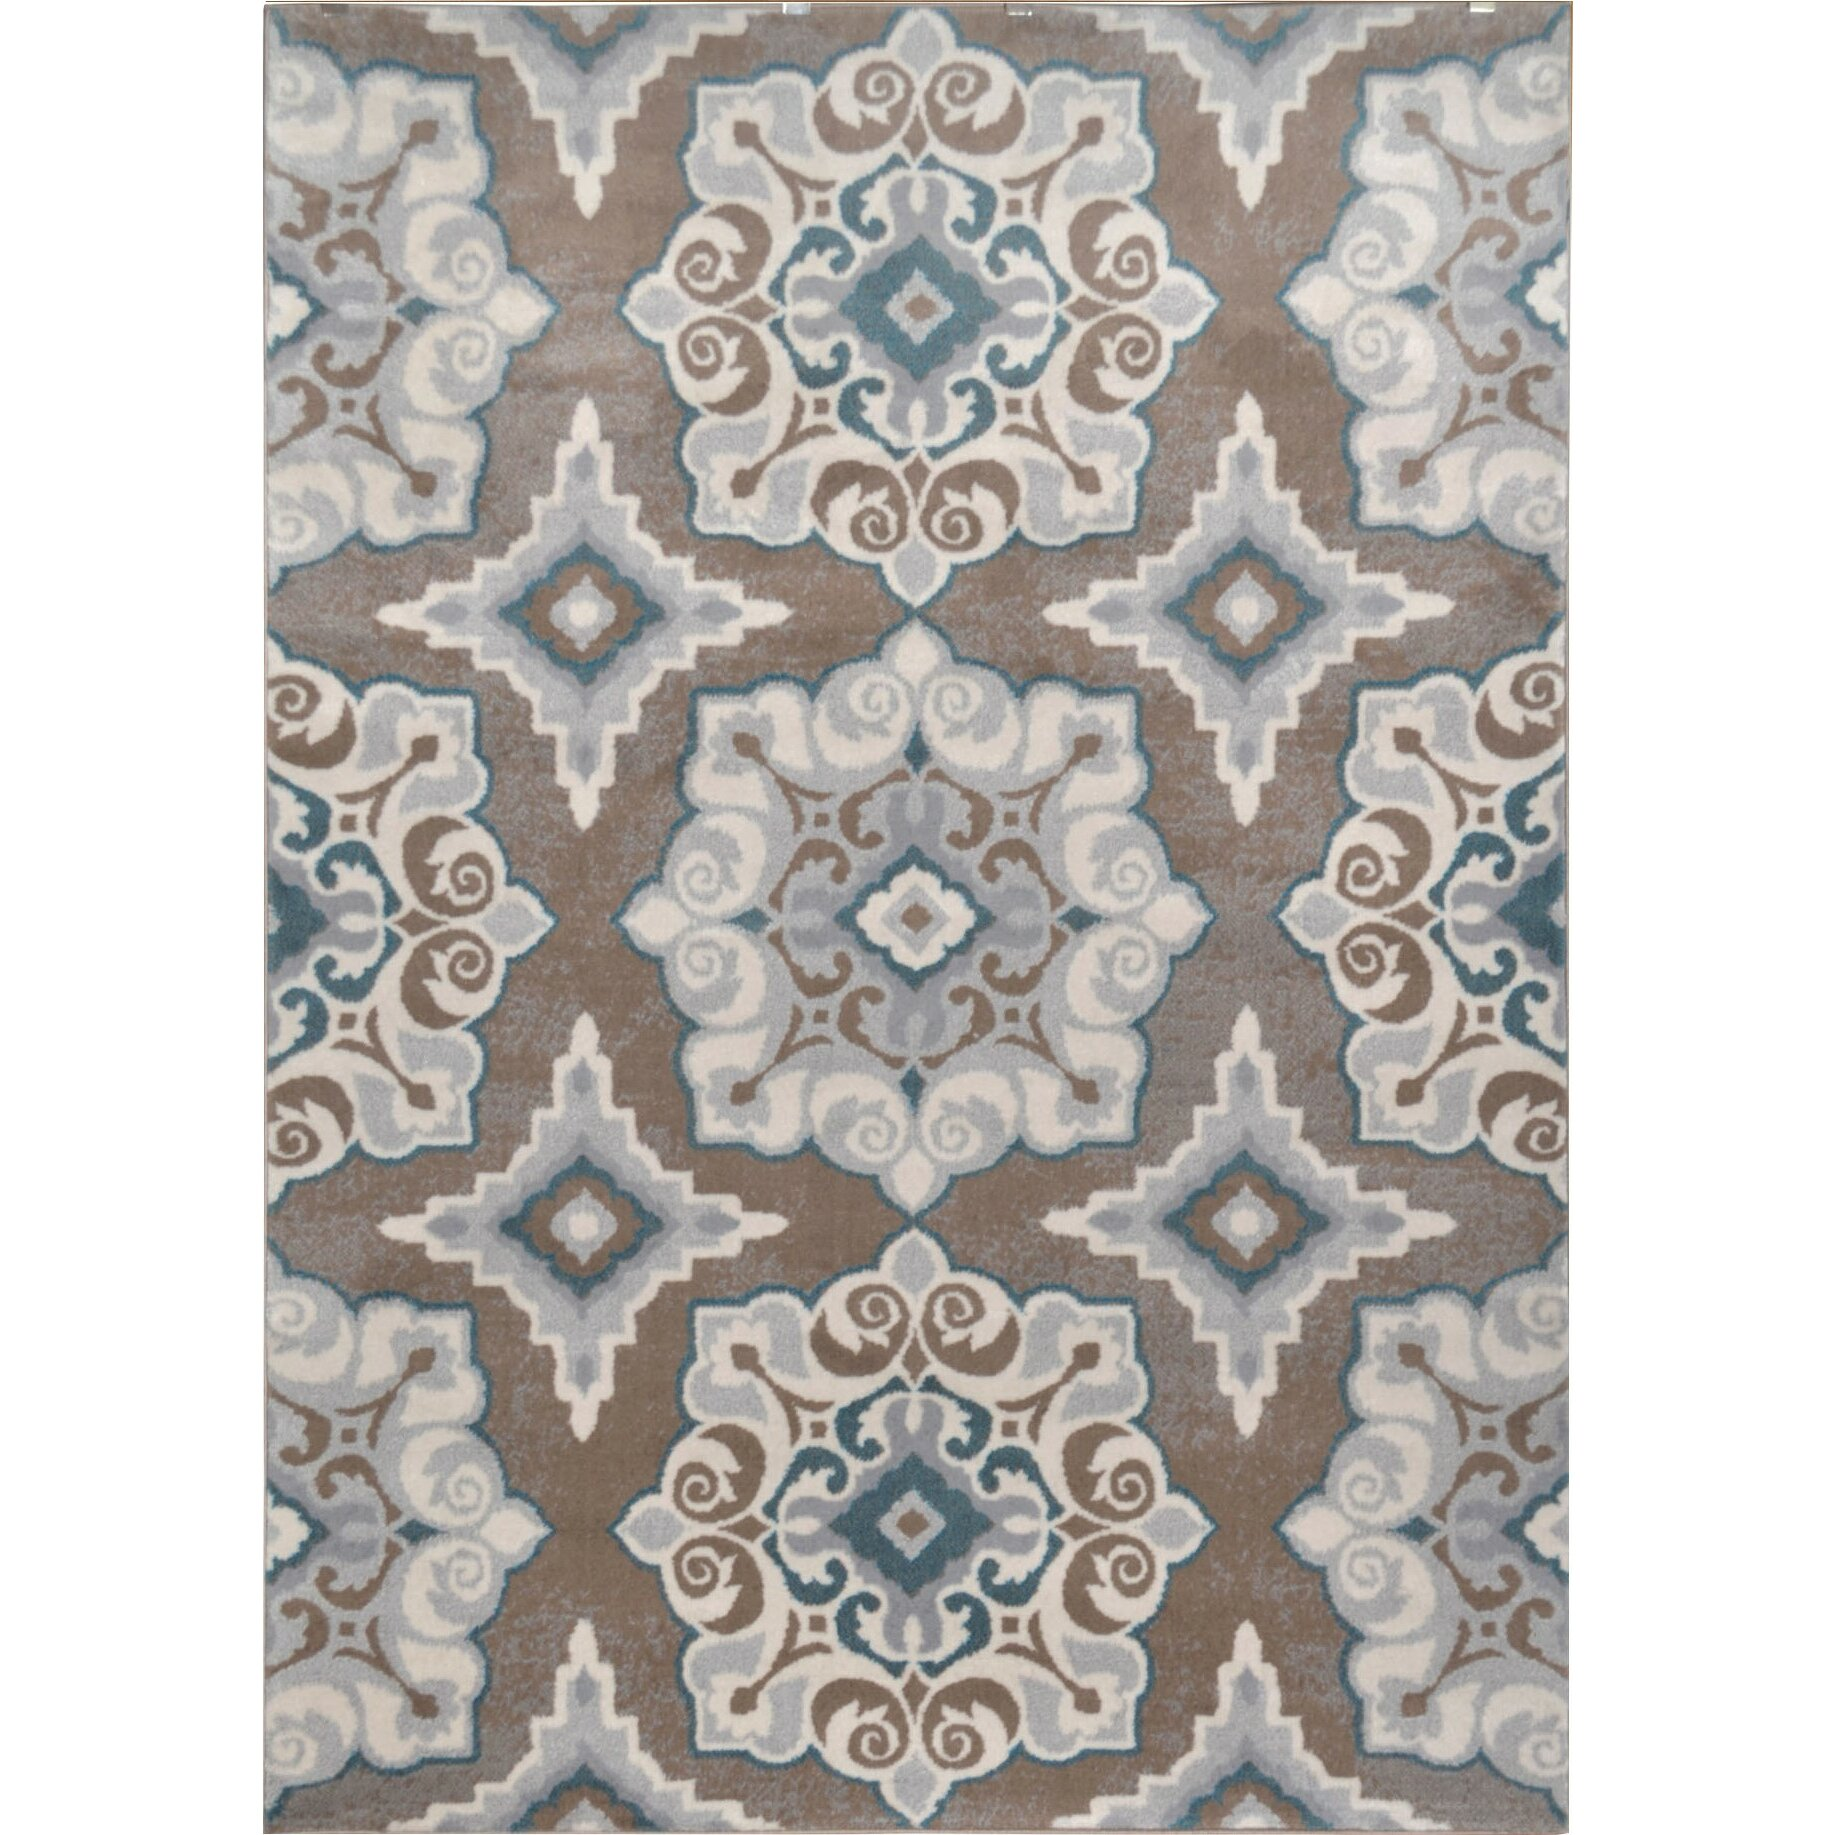 room size area rugs, area rugs | tmanphilly